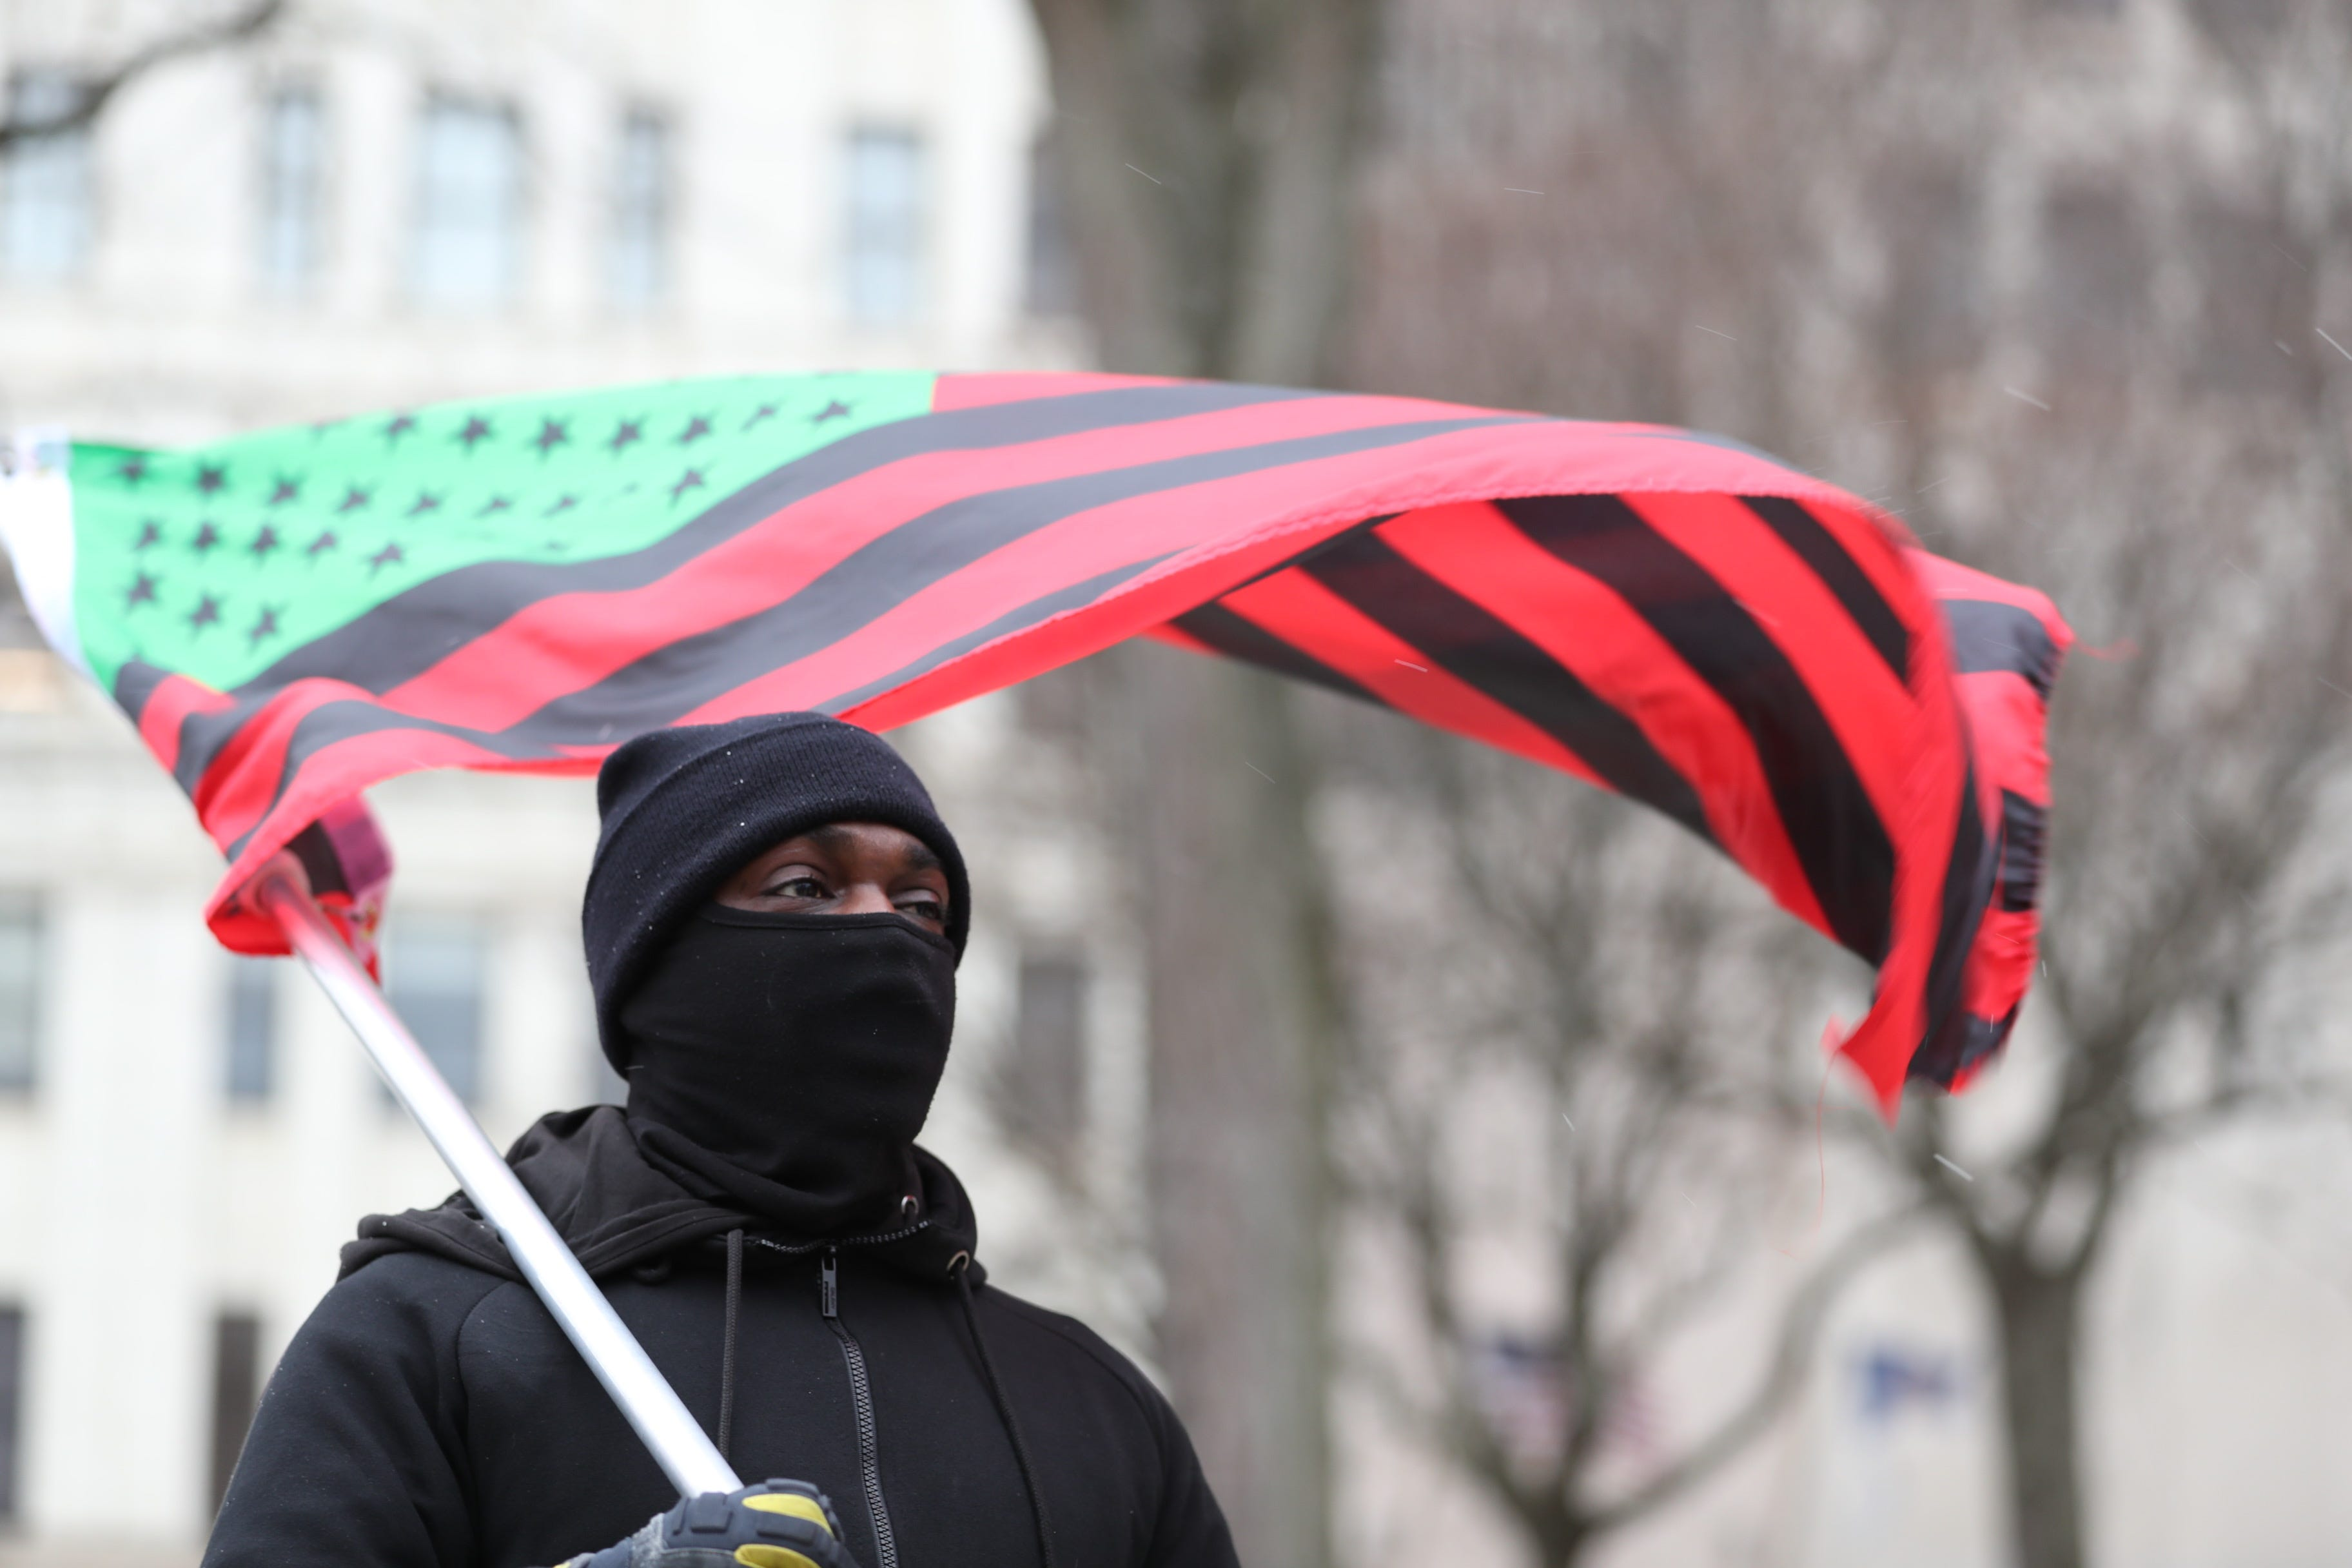 A man carries a Black liberation flag outside the New York state Capitol in Albany on Sunday, Jan. 17, 2021.